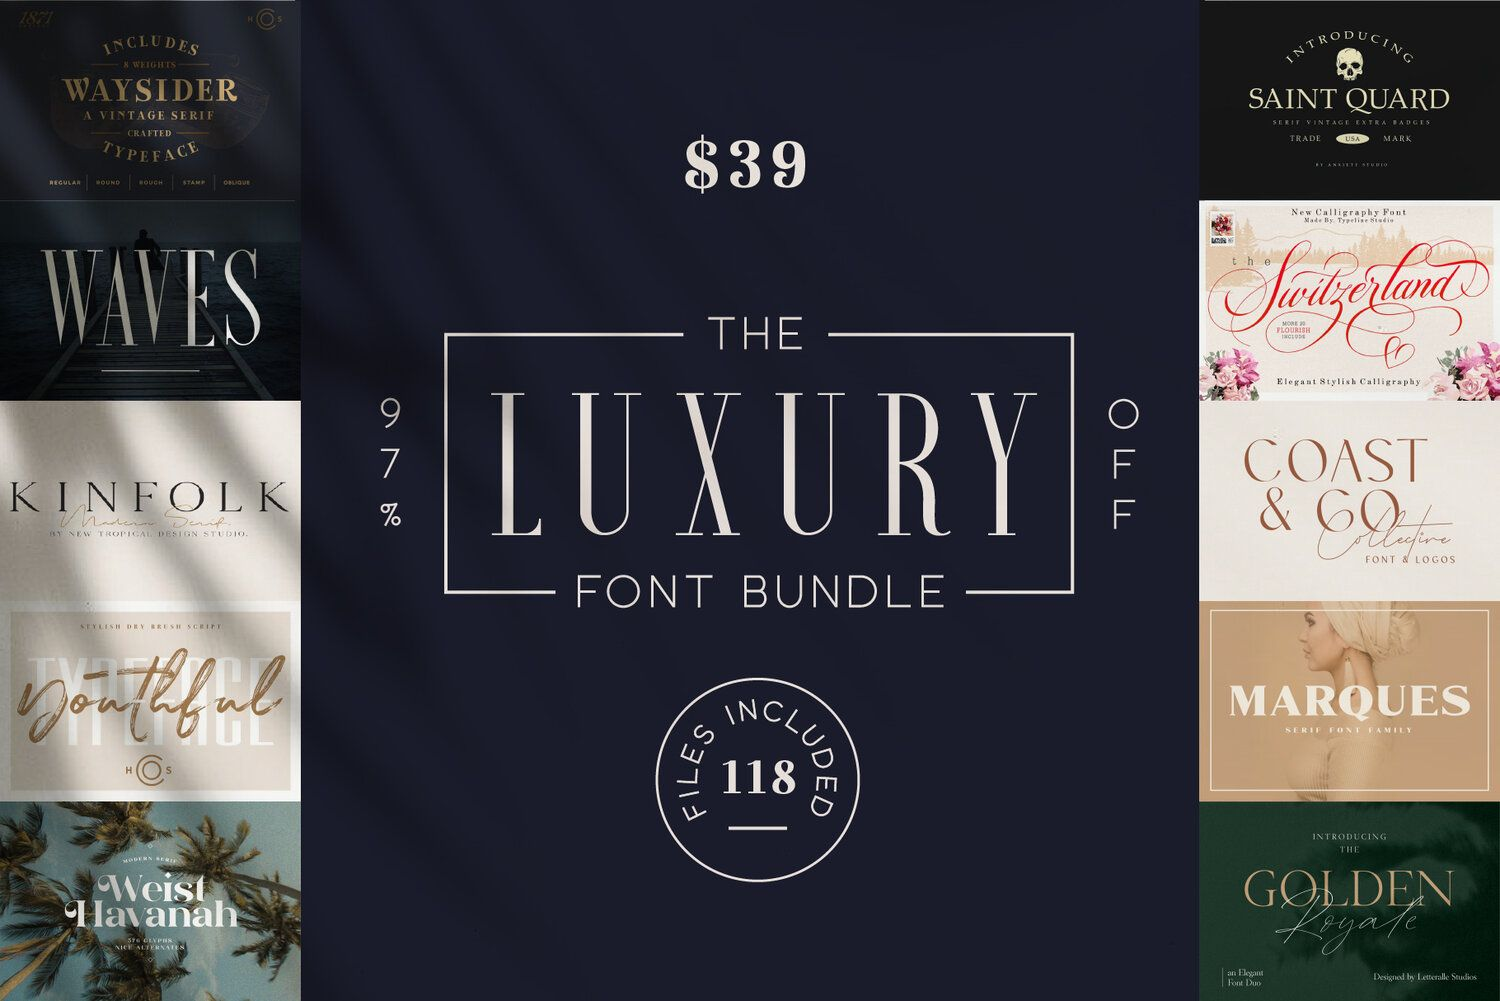 Download The Luxury Font Bundle in 2020 (With images) | Luxury font ...